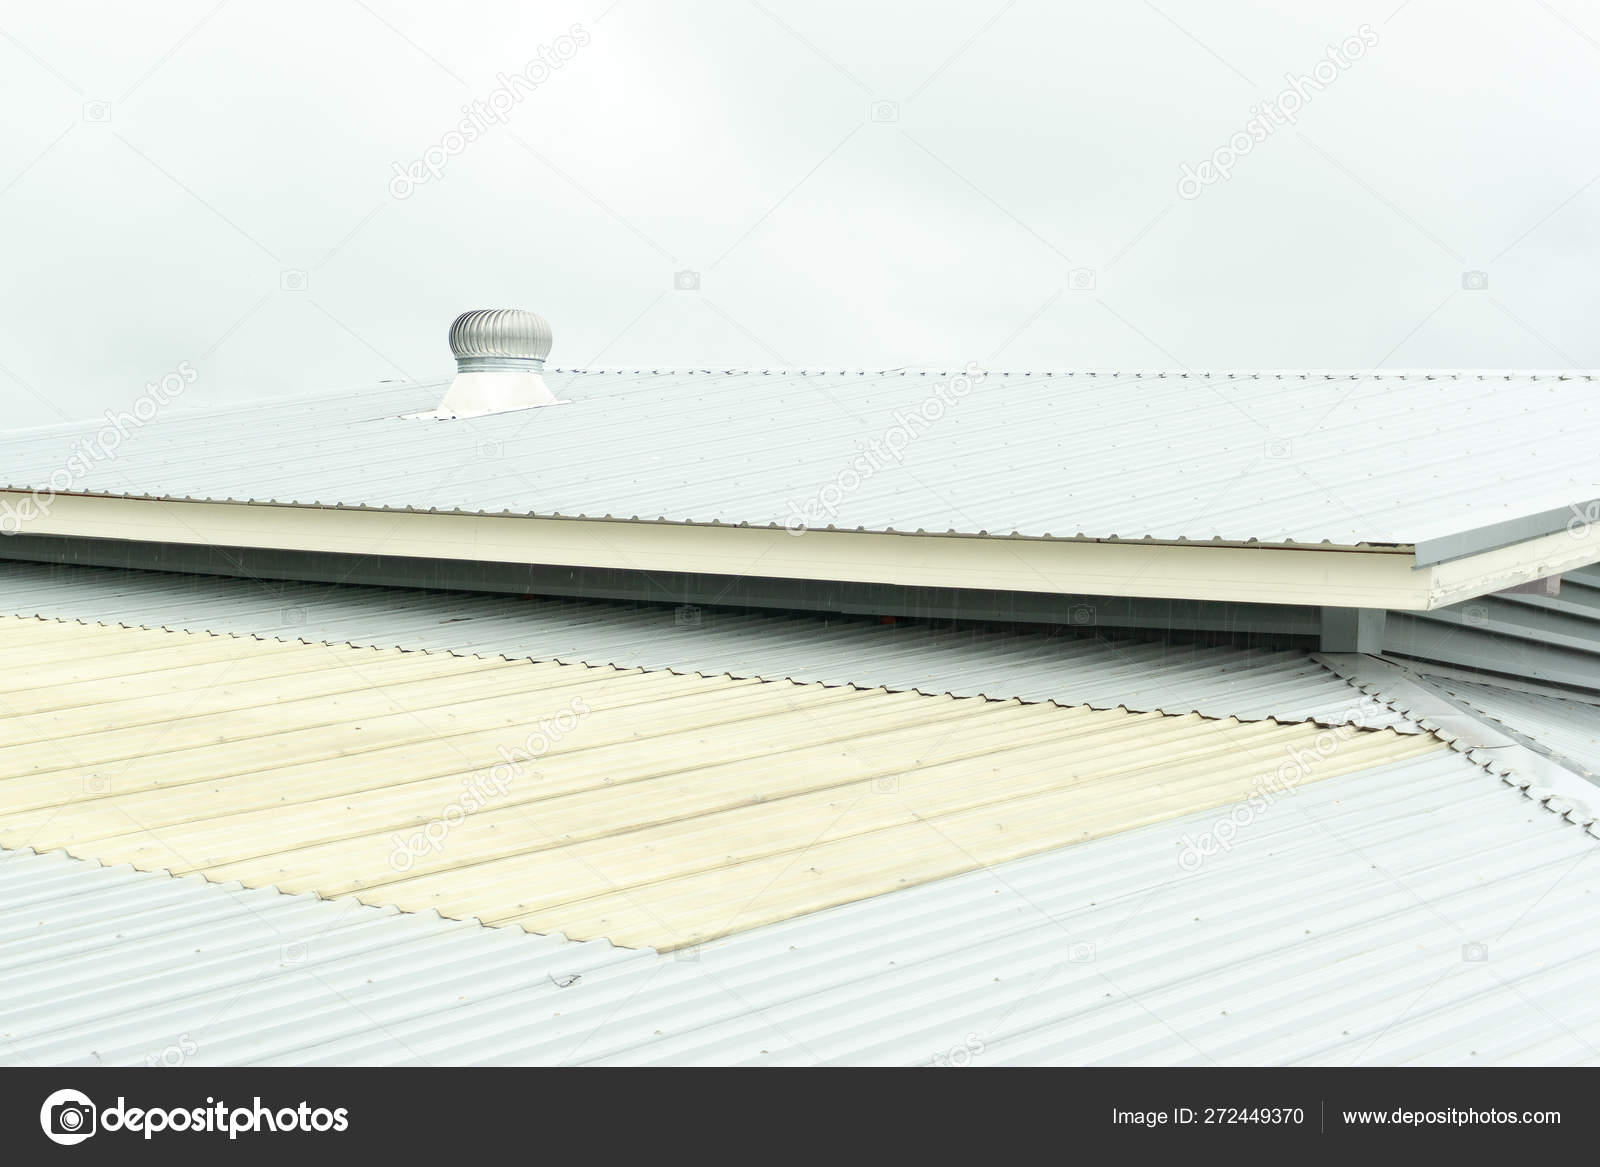 stainless steel roof ventilation air vent metal roof sky background stock photo image by c joebite 272449370